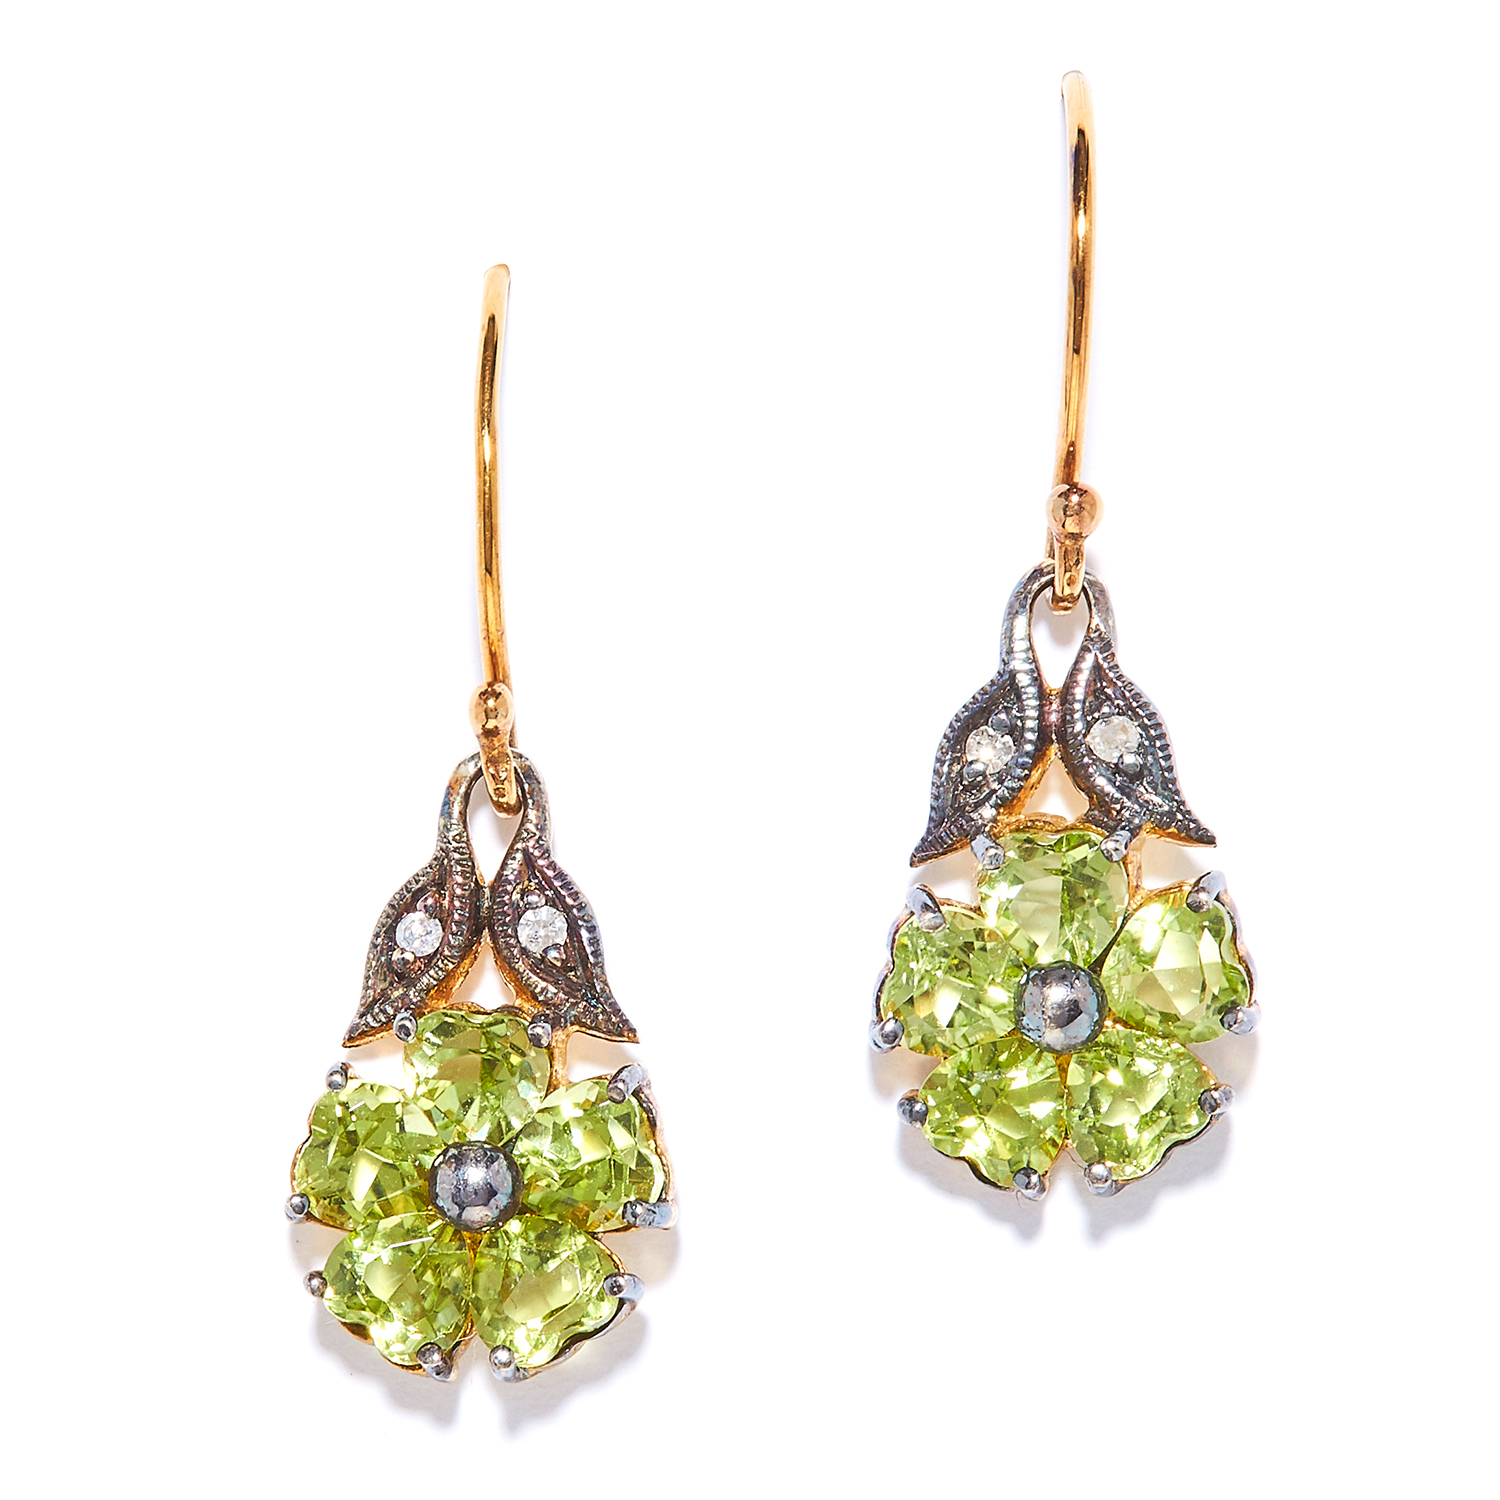 PERIDOT AND DIAMOND EARRINGS the flower design set with peridot below diamond accents, unmarked, 2.